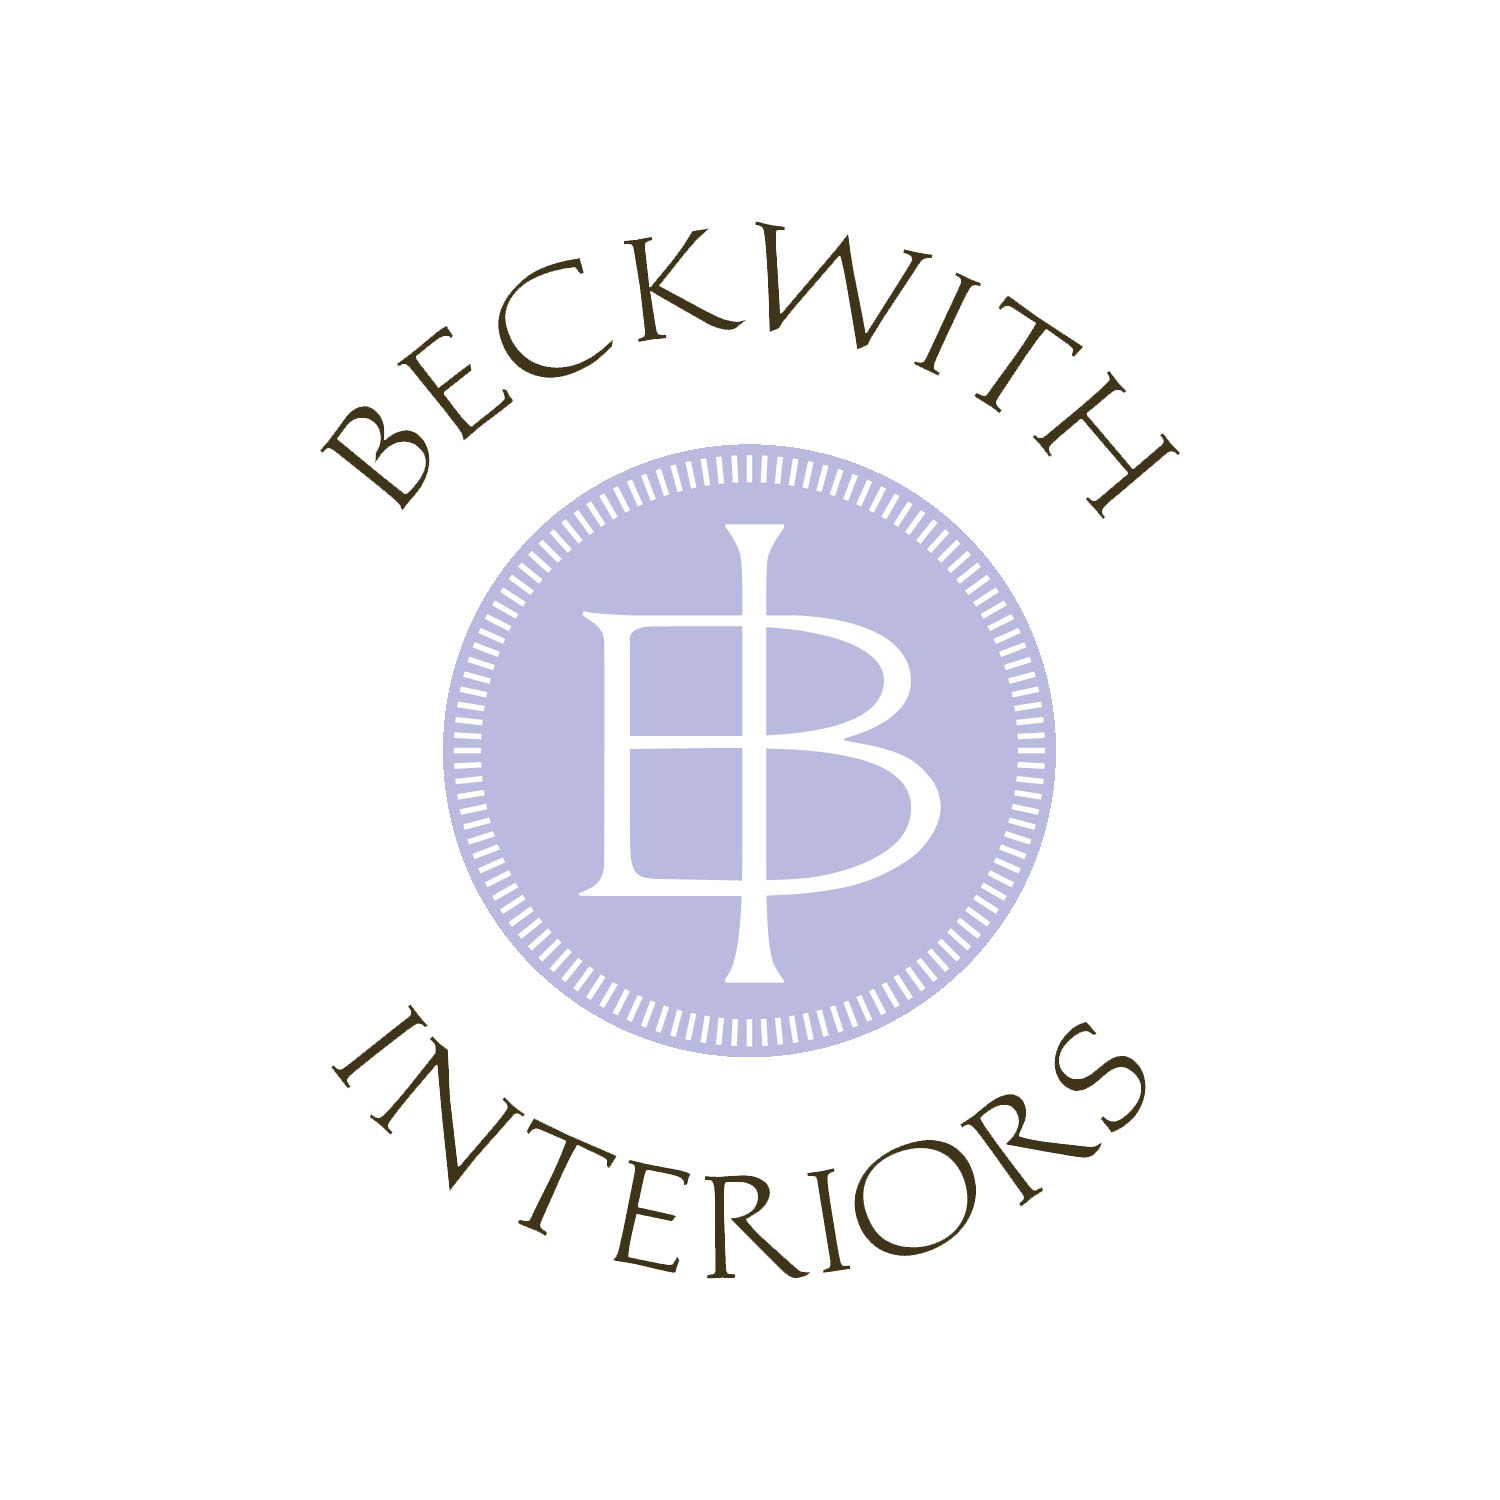 beckwith-int_2c_rgb_vert-no-background